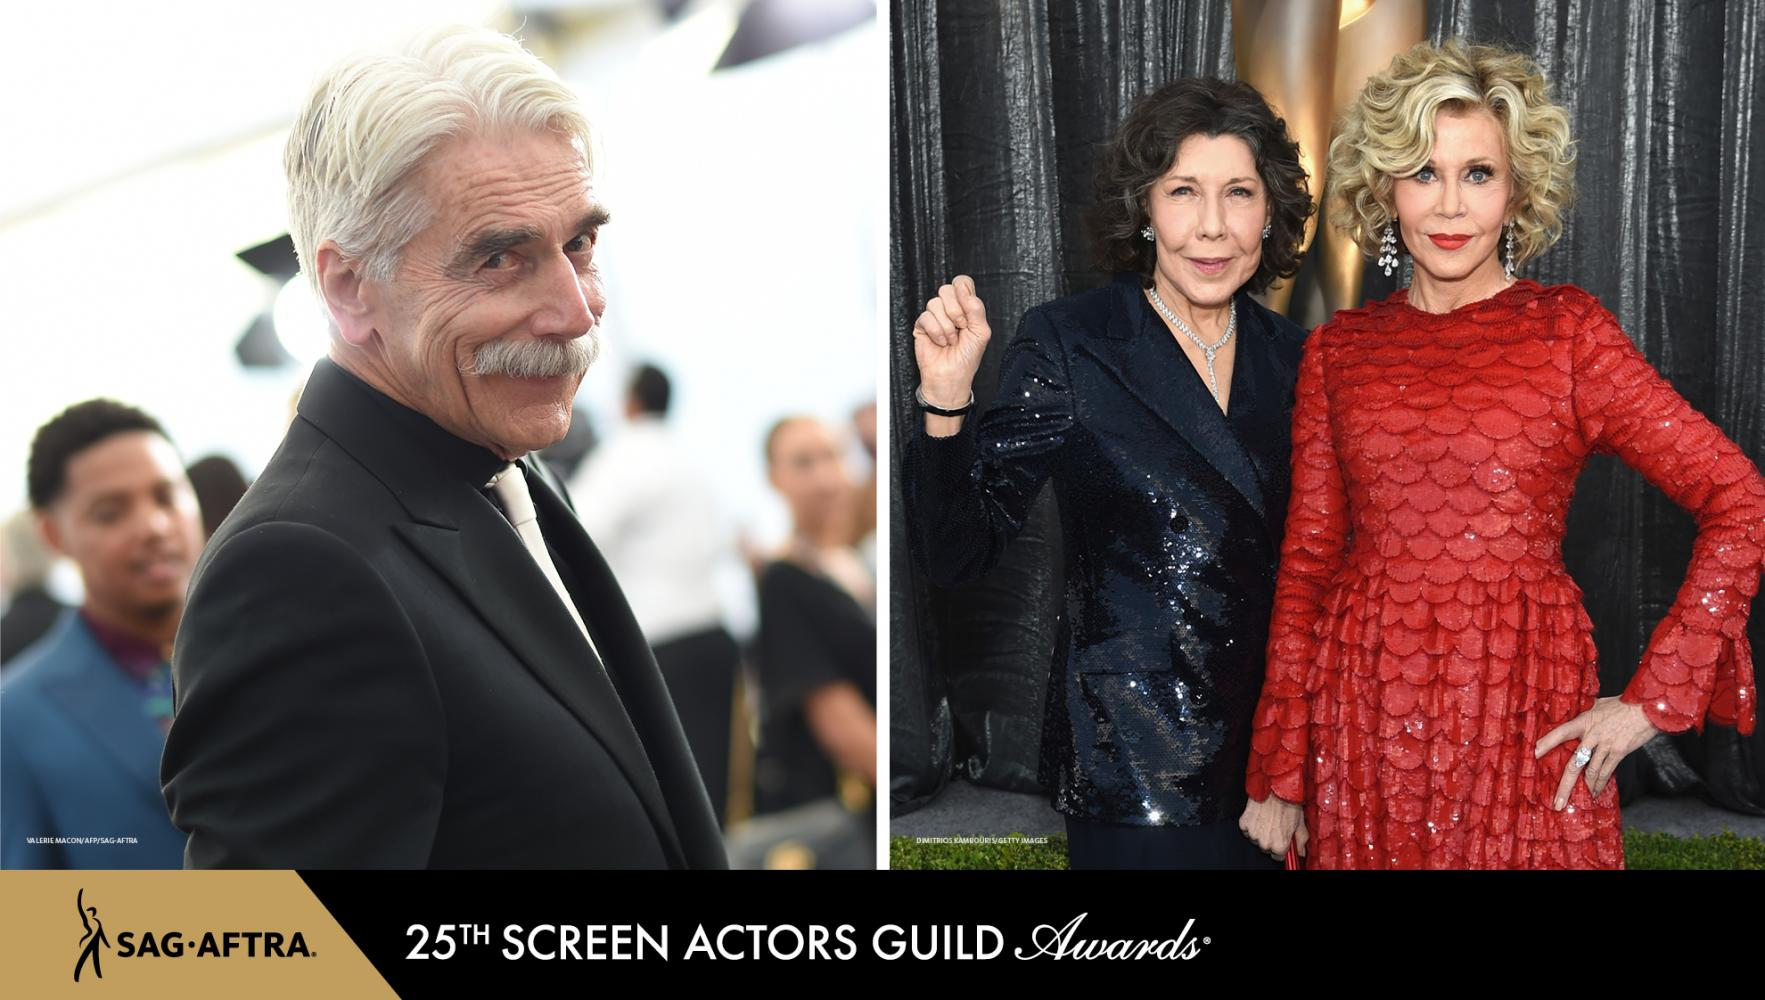 over the shoulder pose from Elliot wearing an all black suite with a silver tie. Tomlin with her right fist held at shoulder height in a sequenced black suite and Fonda in a red long sleeve fish scale dress.